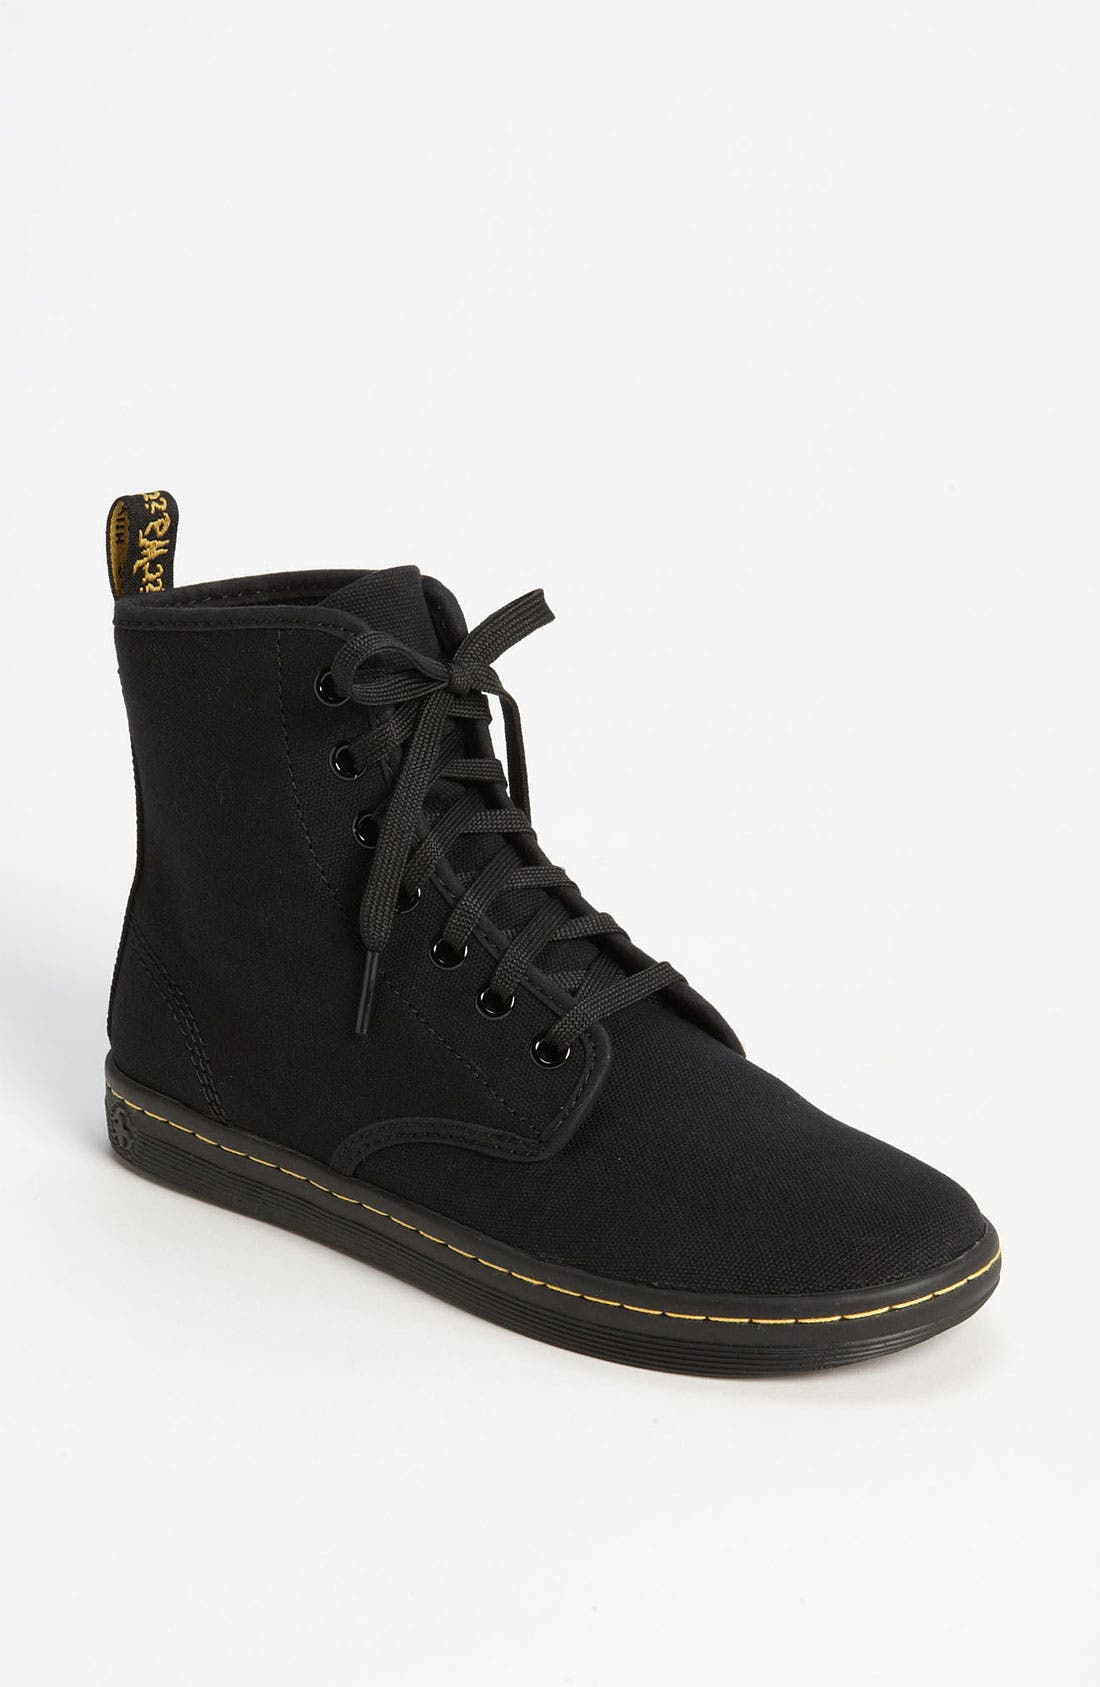 Main Image - Dr. Martens 'Shoreditch' Boot